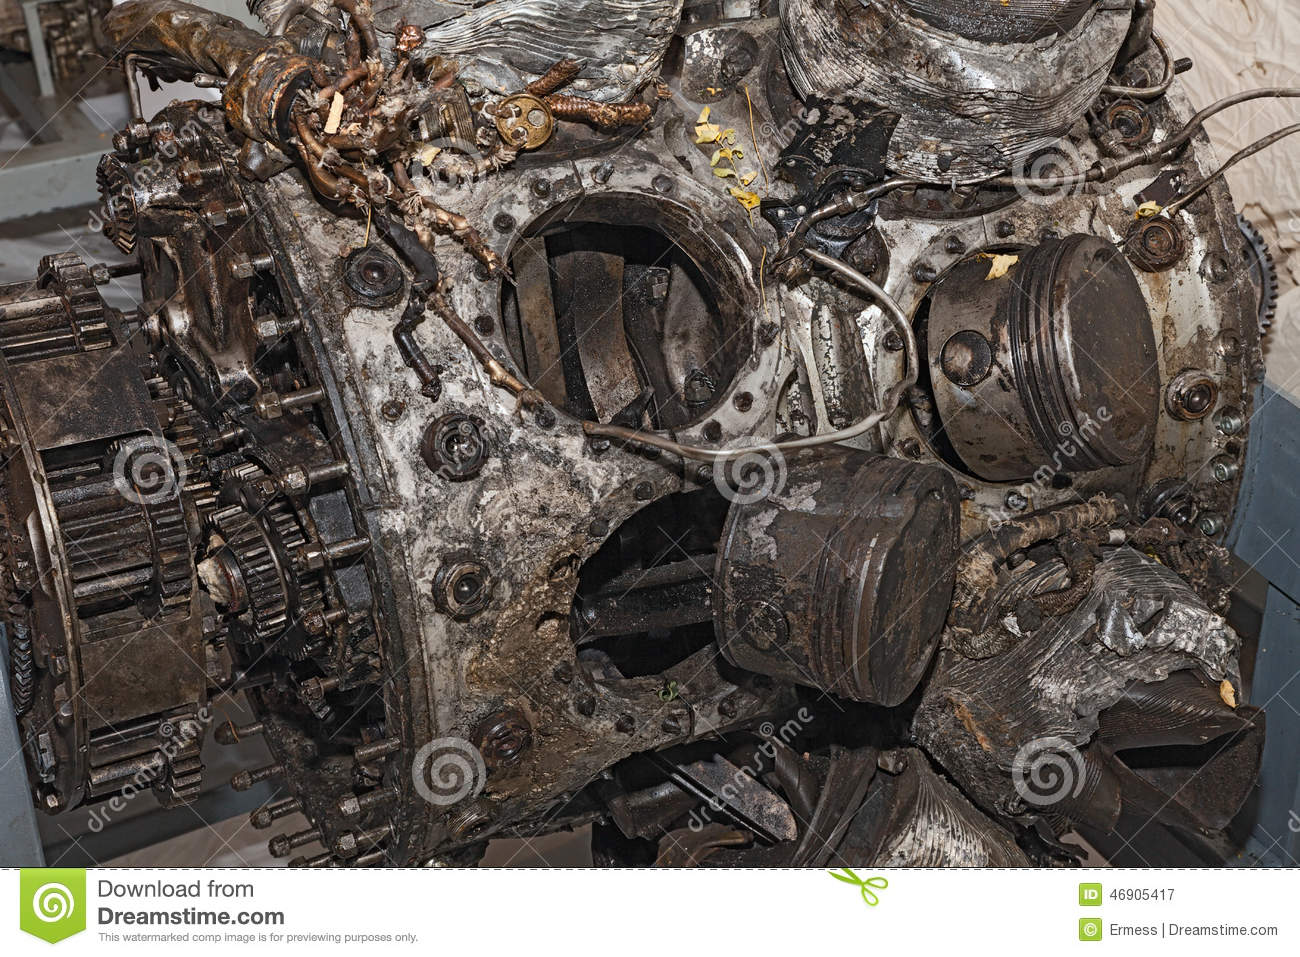 Engine Destroyed Of An Old Military Aircraft Stock Image